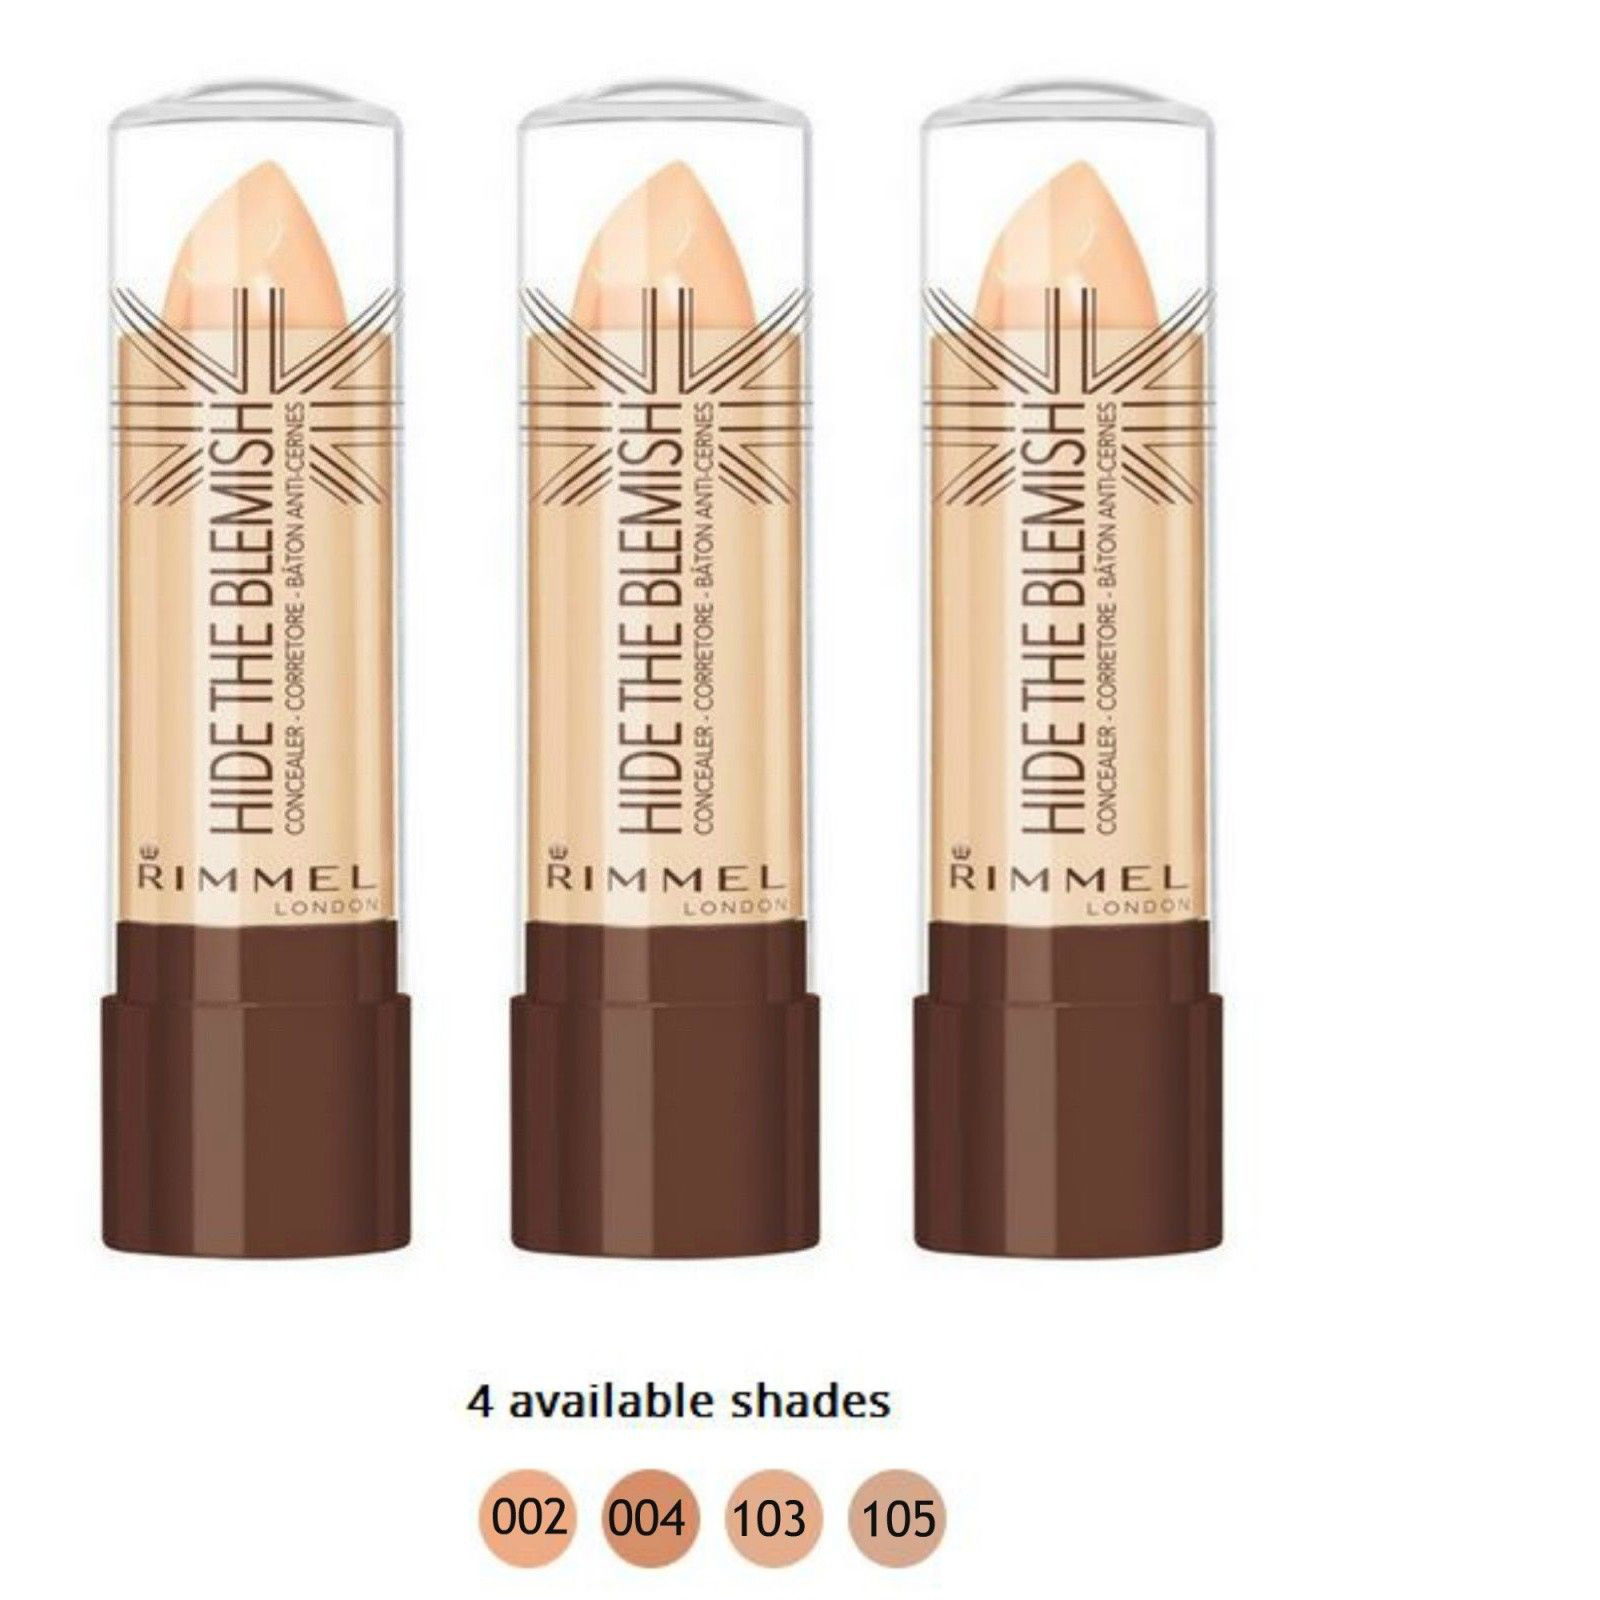 KIT 3 PZ RIMMEL HIDE THE BLEMISH CORRETTORE IN STICK 4,5g 103 SOFT HONEY